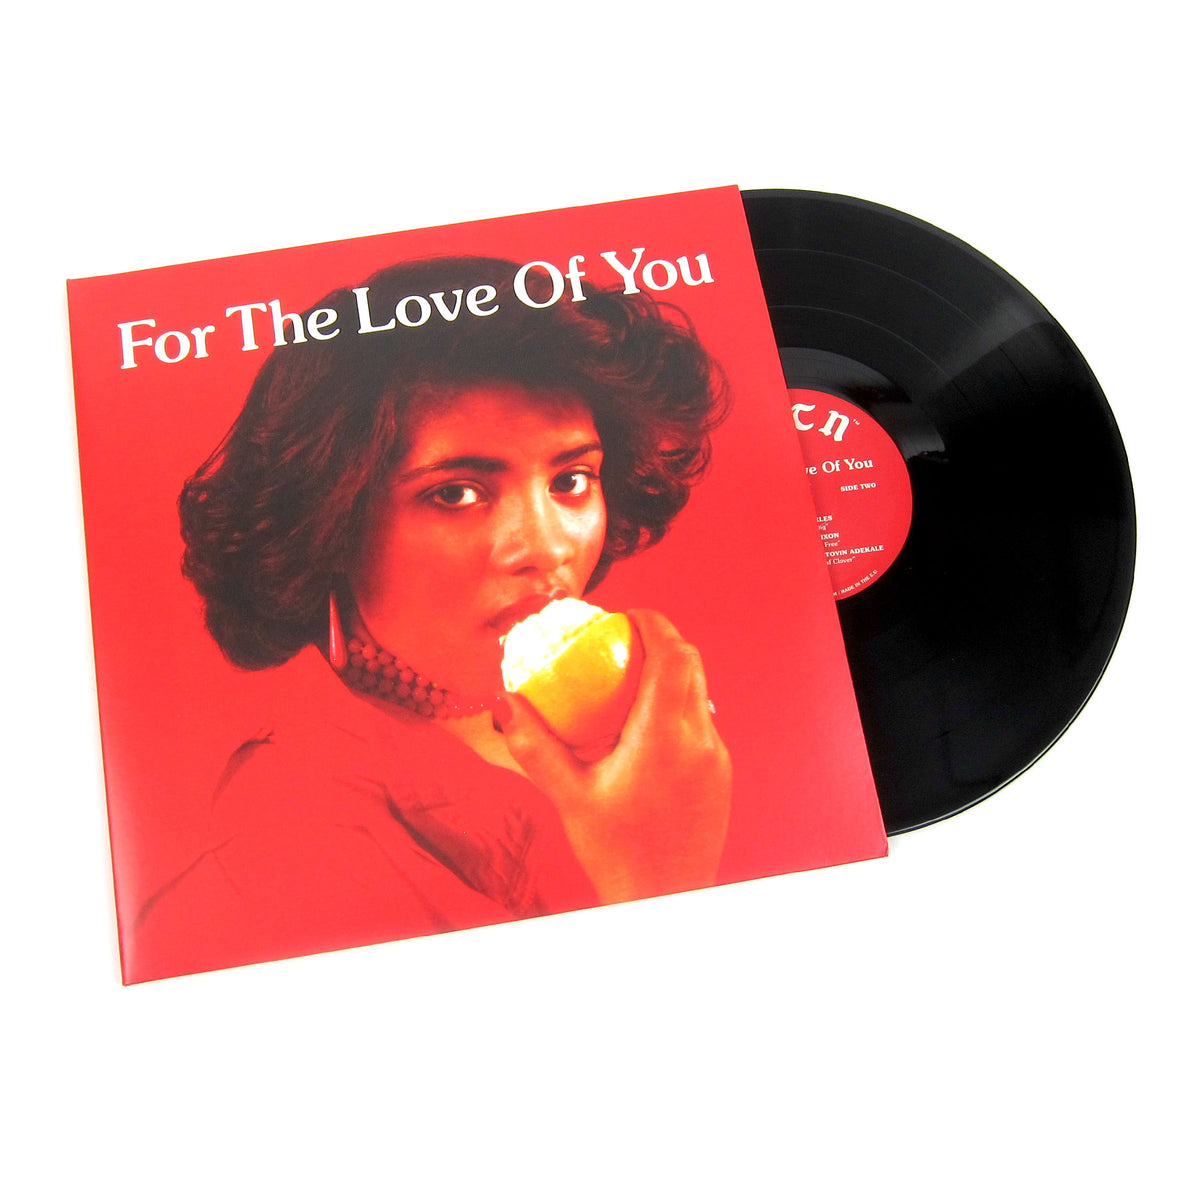 Athens Of The North: For The Love Of You (Lovers Rock) Vinyl 2LP